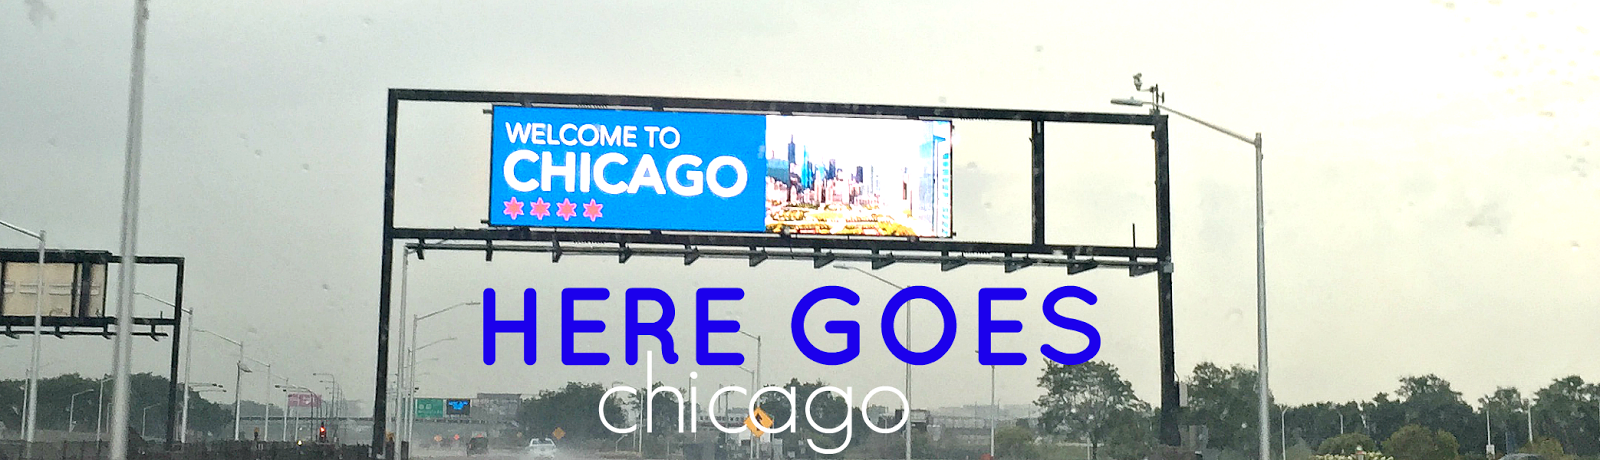 Here Goes: Chicago - www.operationtwenties.com